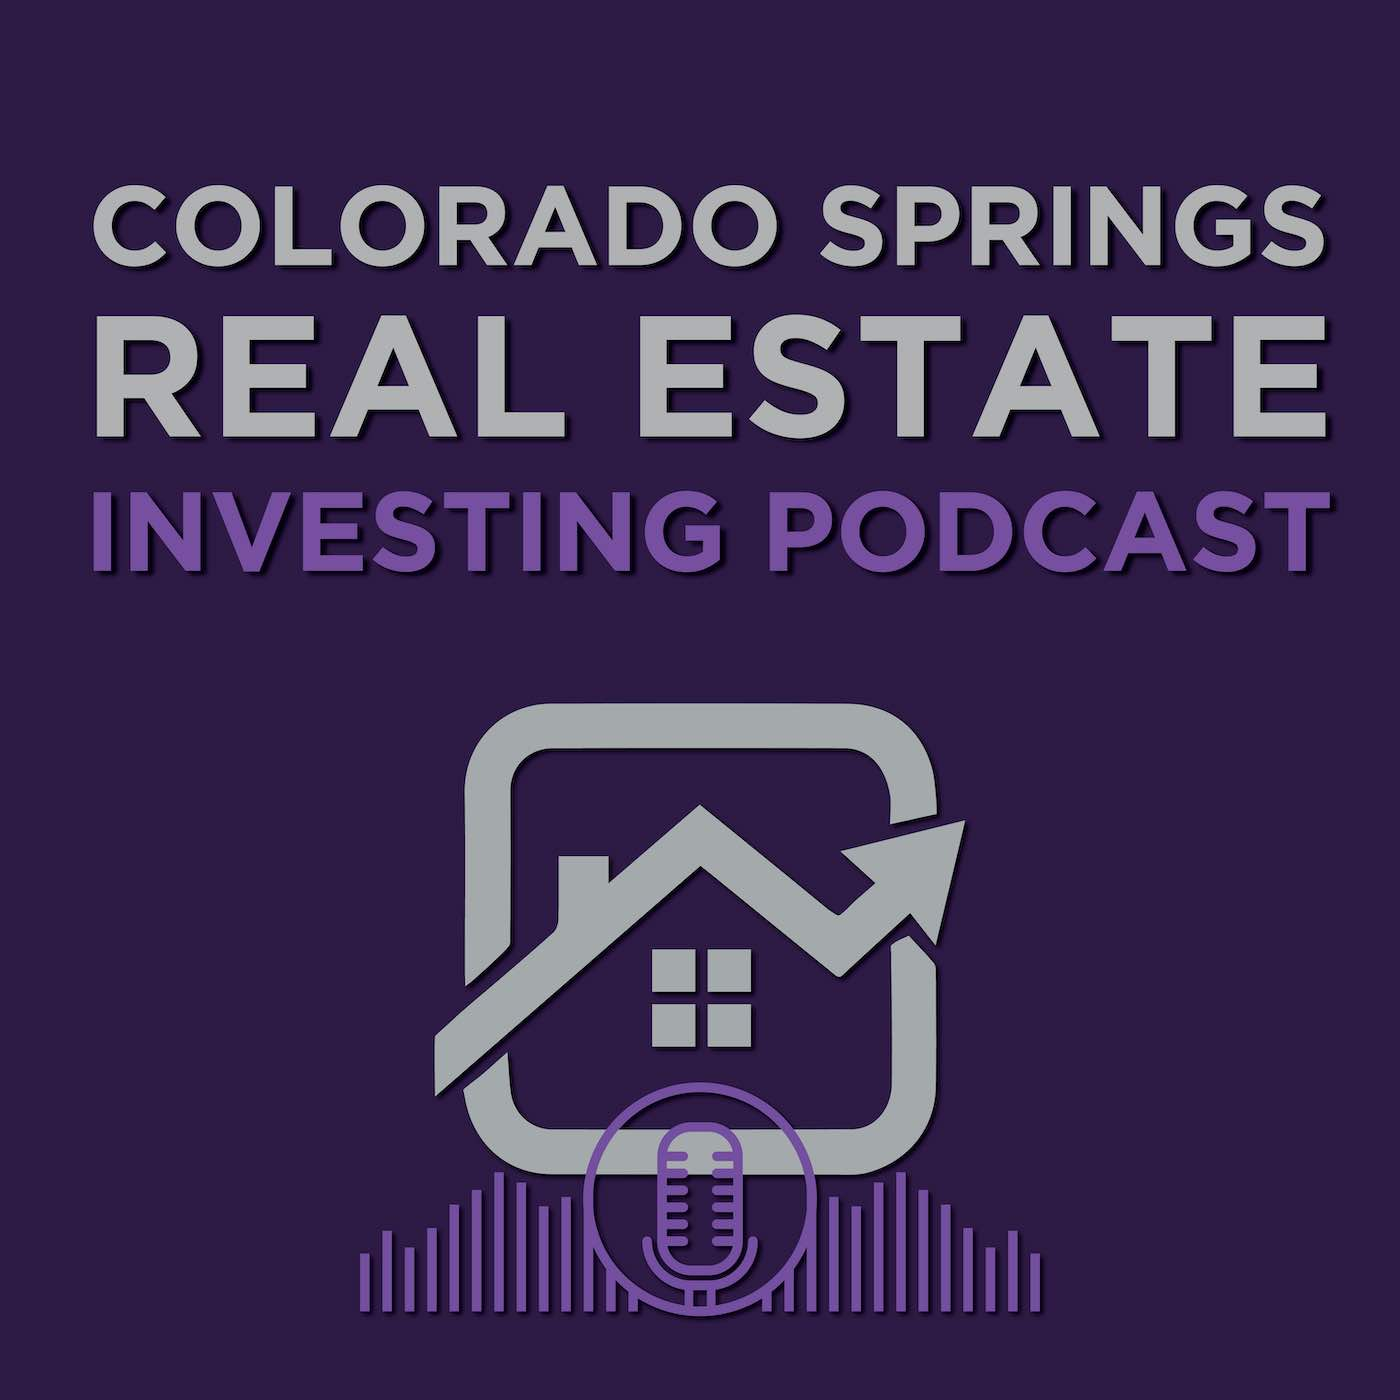 Colorado Springs Real Estate Investing Podcast